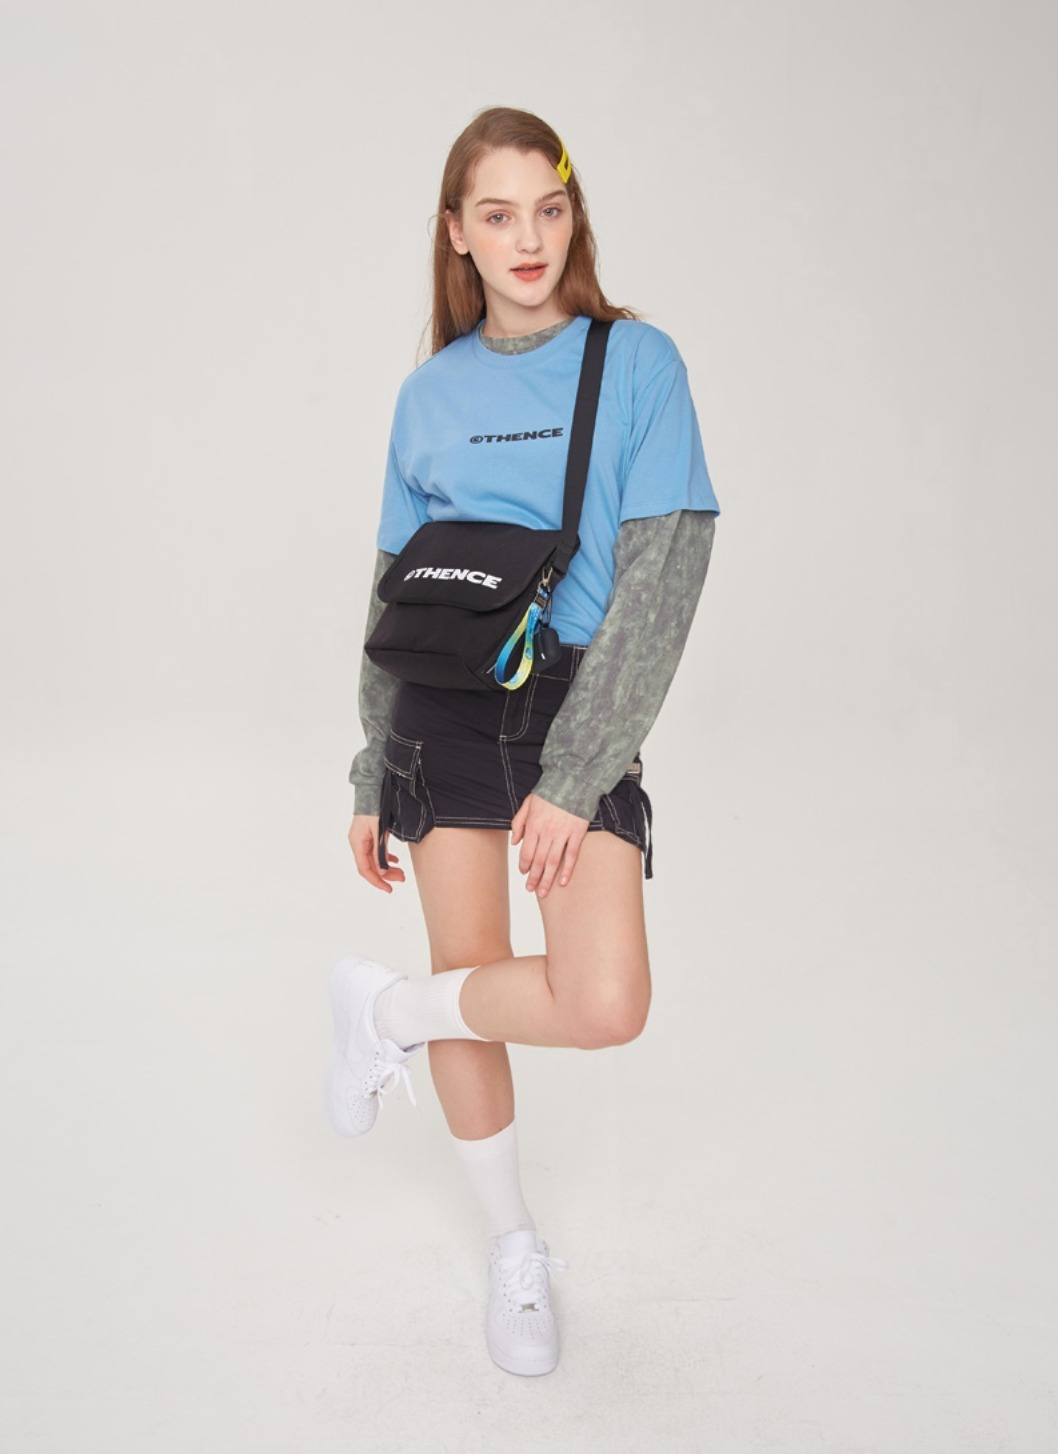 shop thence bags